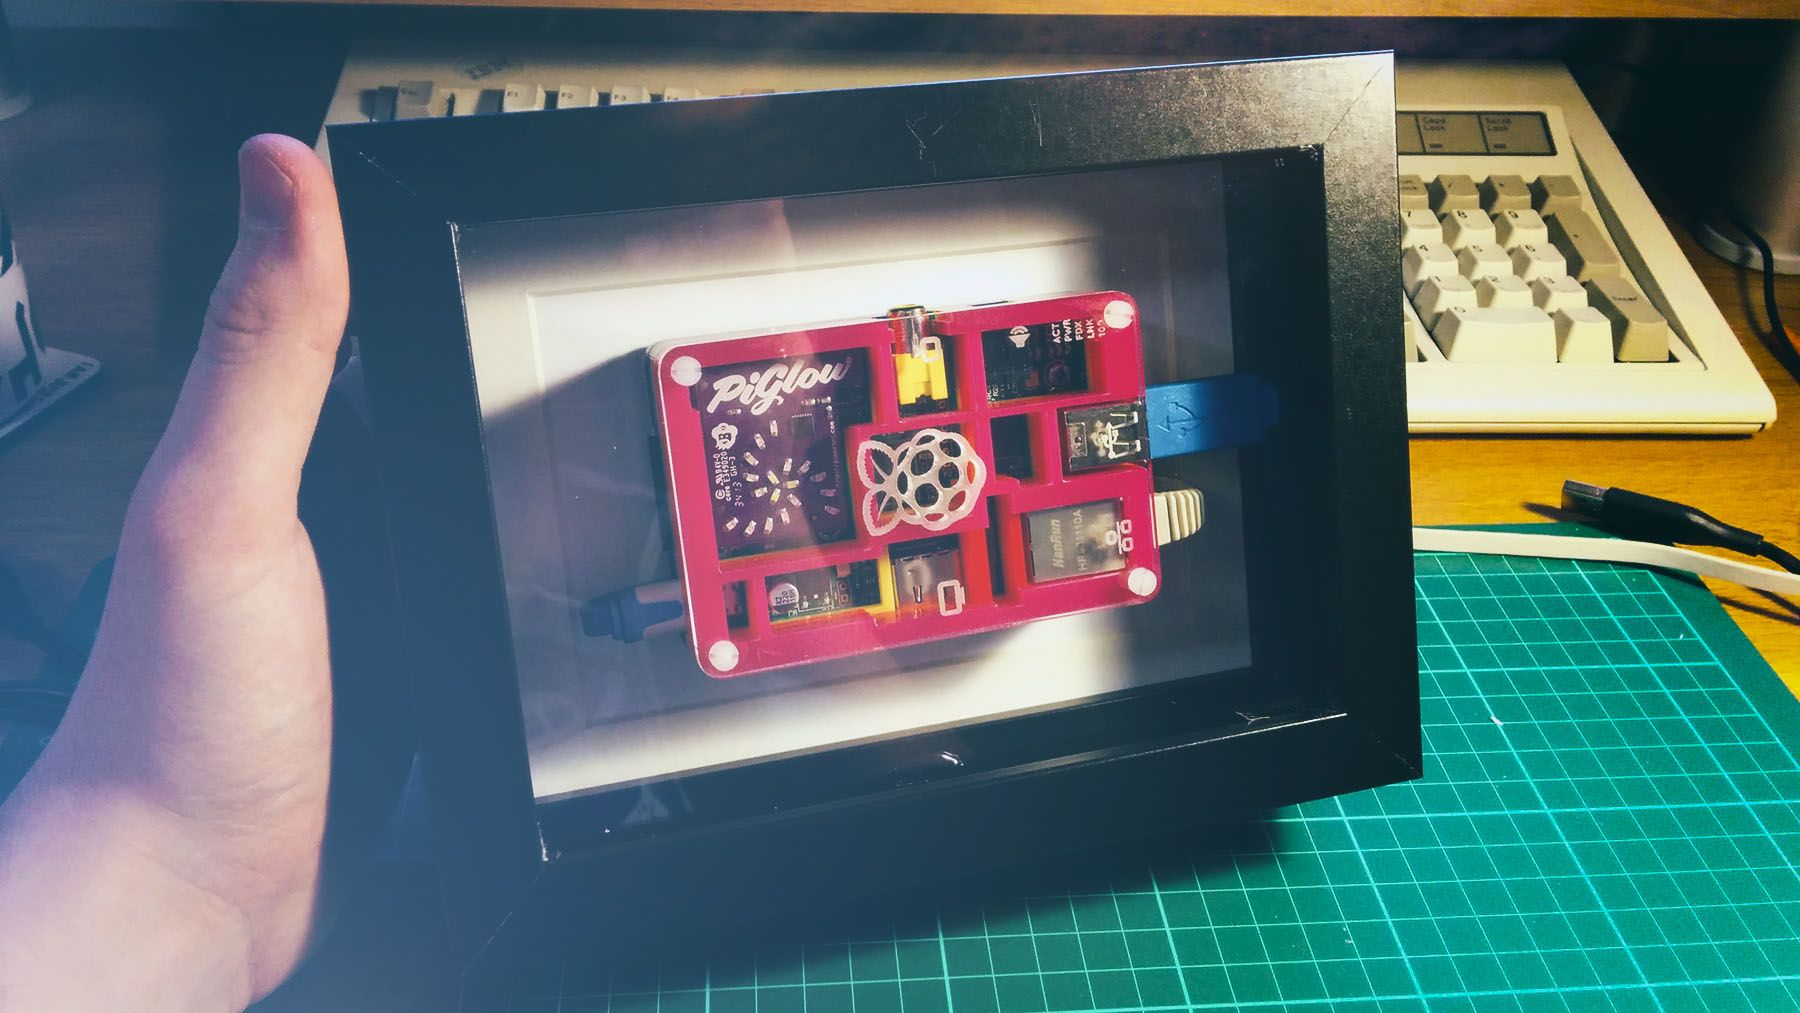 Framing the Raspberry Pi